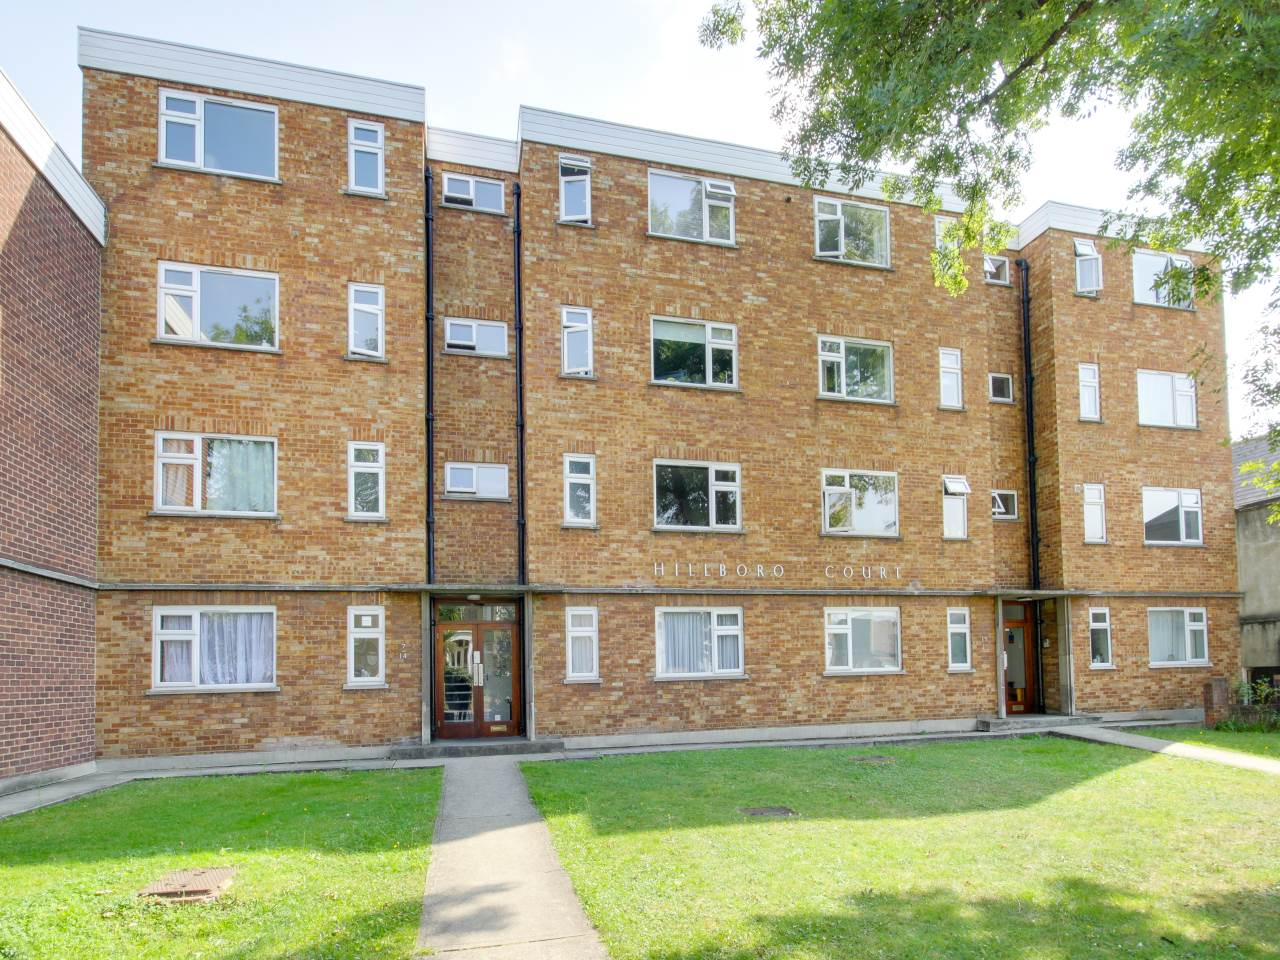 1 bed flat for sale in Hillboro Court, 104 Hainault Court - Property Image 1